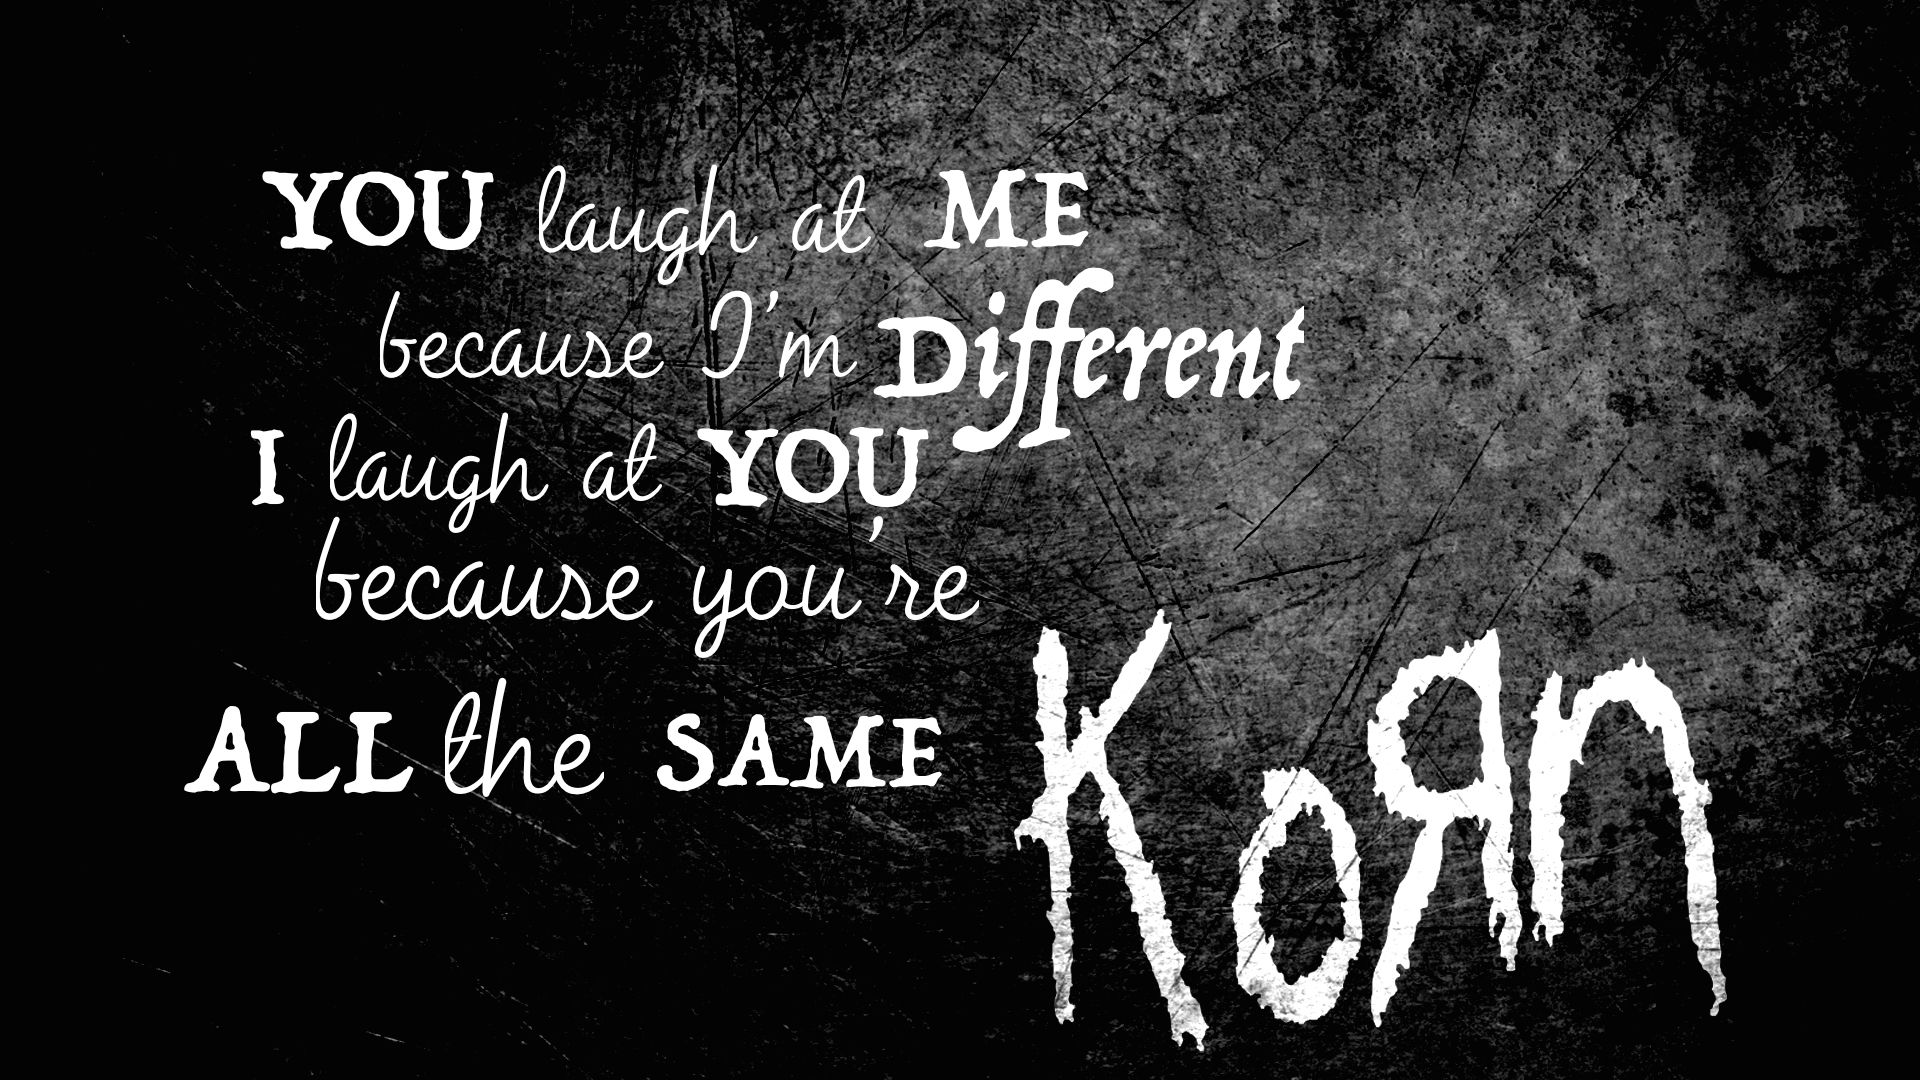 Korn Quote Wallpaper Made This About Two Years Ago Korn Rock Music Lyrics Music Wallpaper